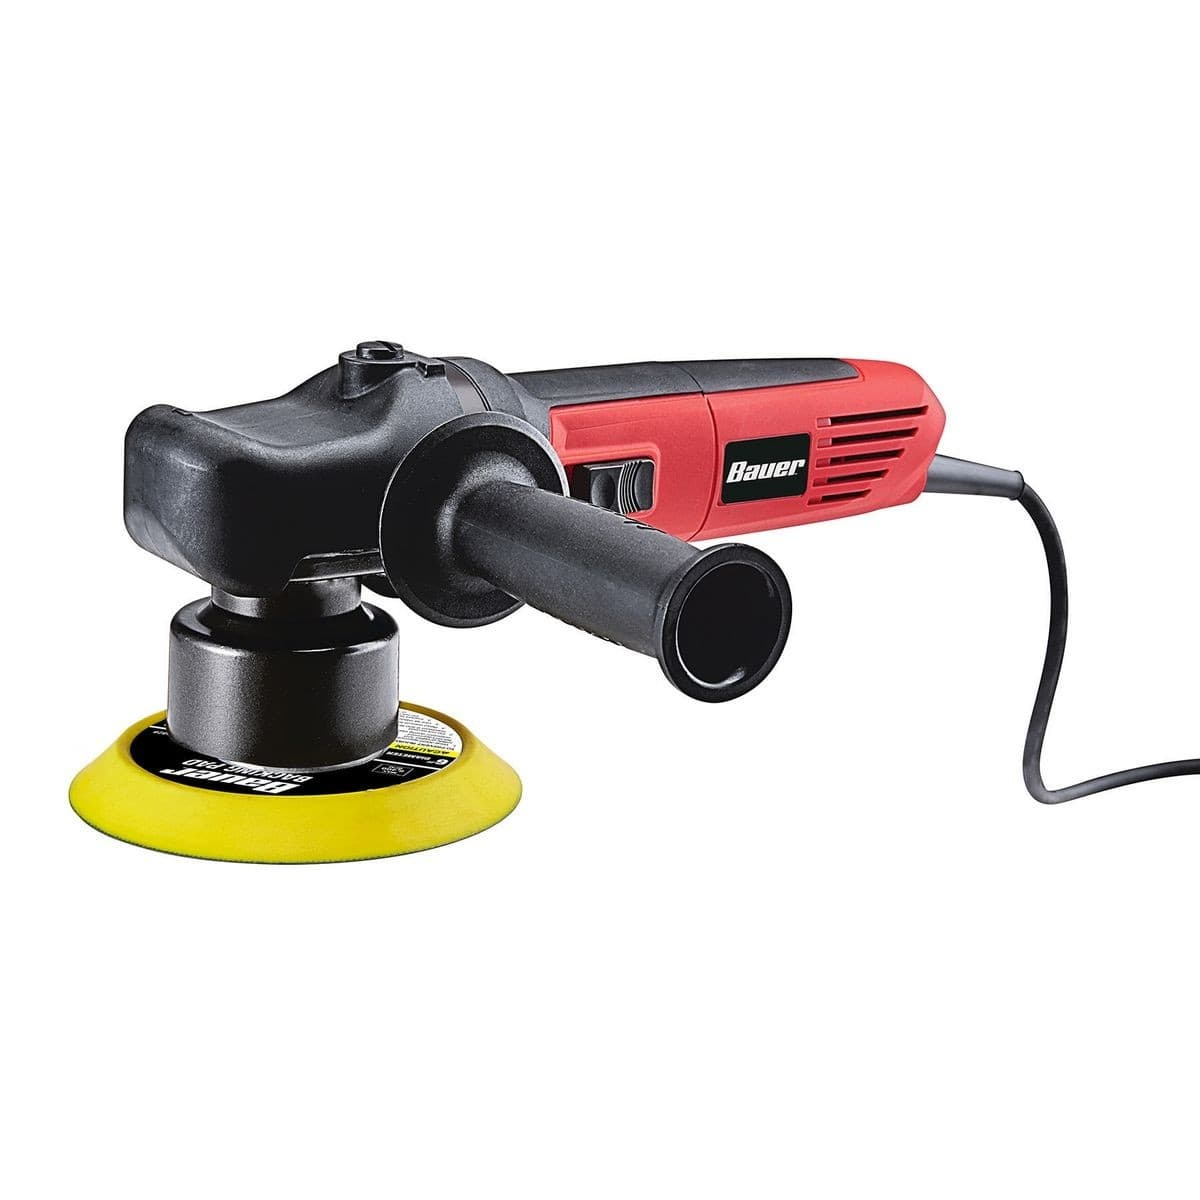 BAUER 6 In. 5.7 Amp Heavy Duty Dual Action Variable Speed Polisher $49.99